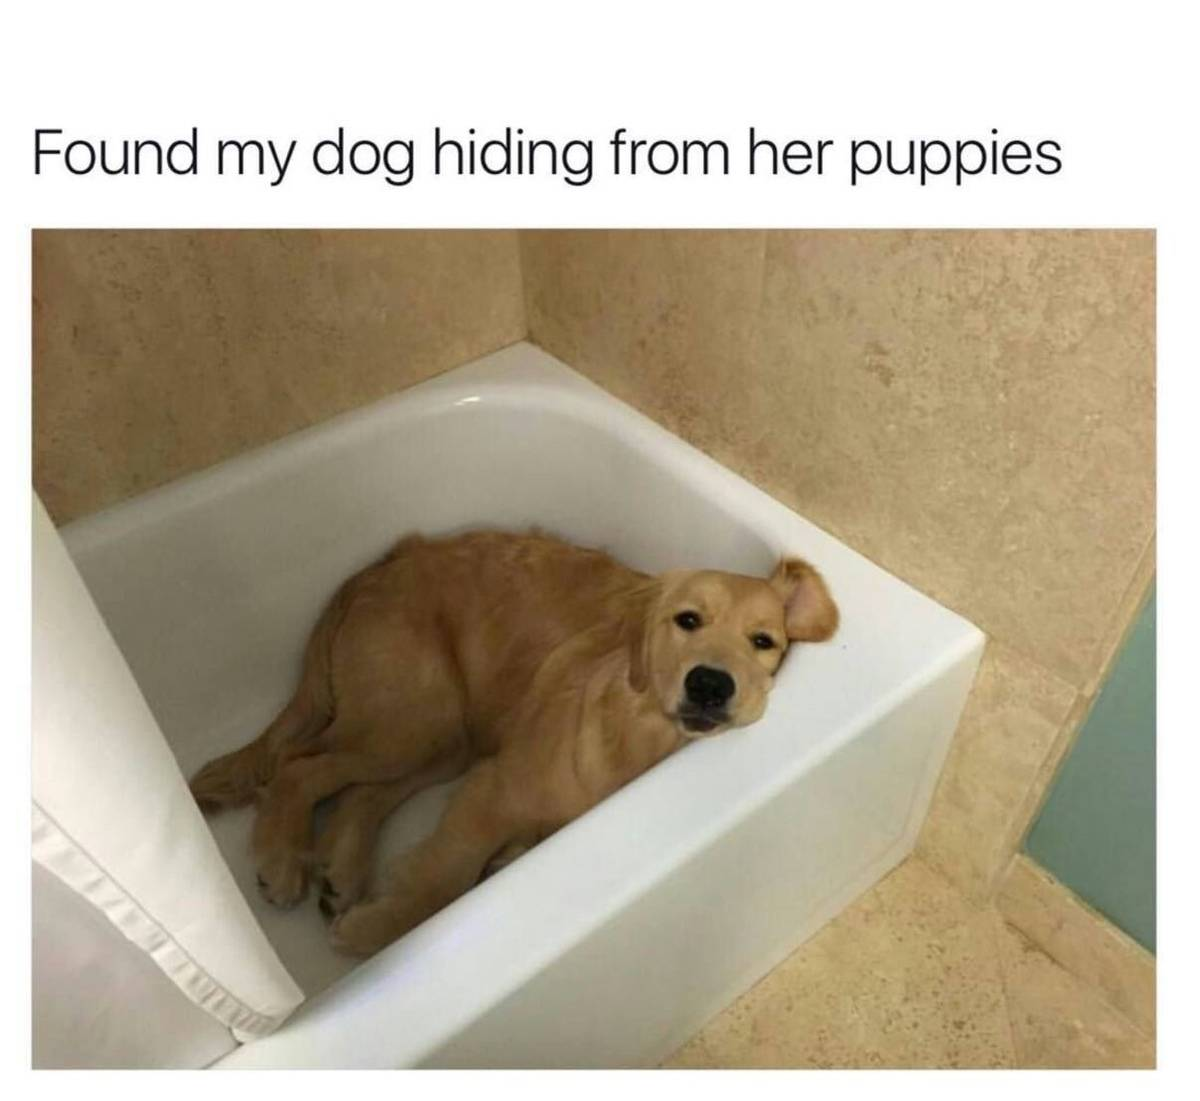 A dog mom hides from her puppies by lying in the bathtub.